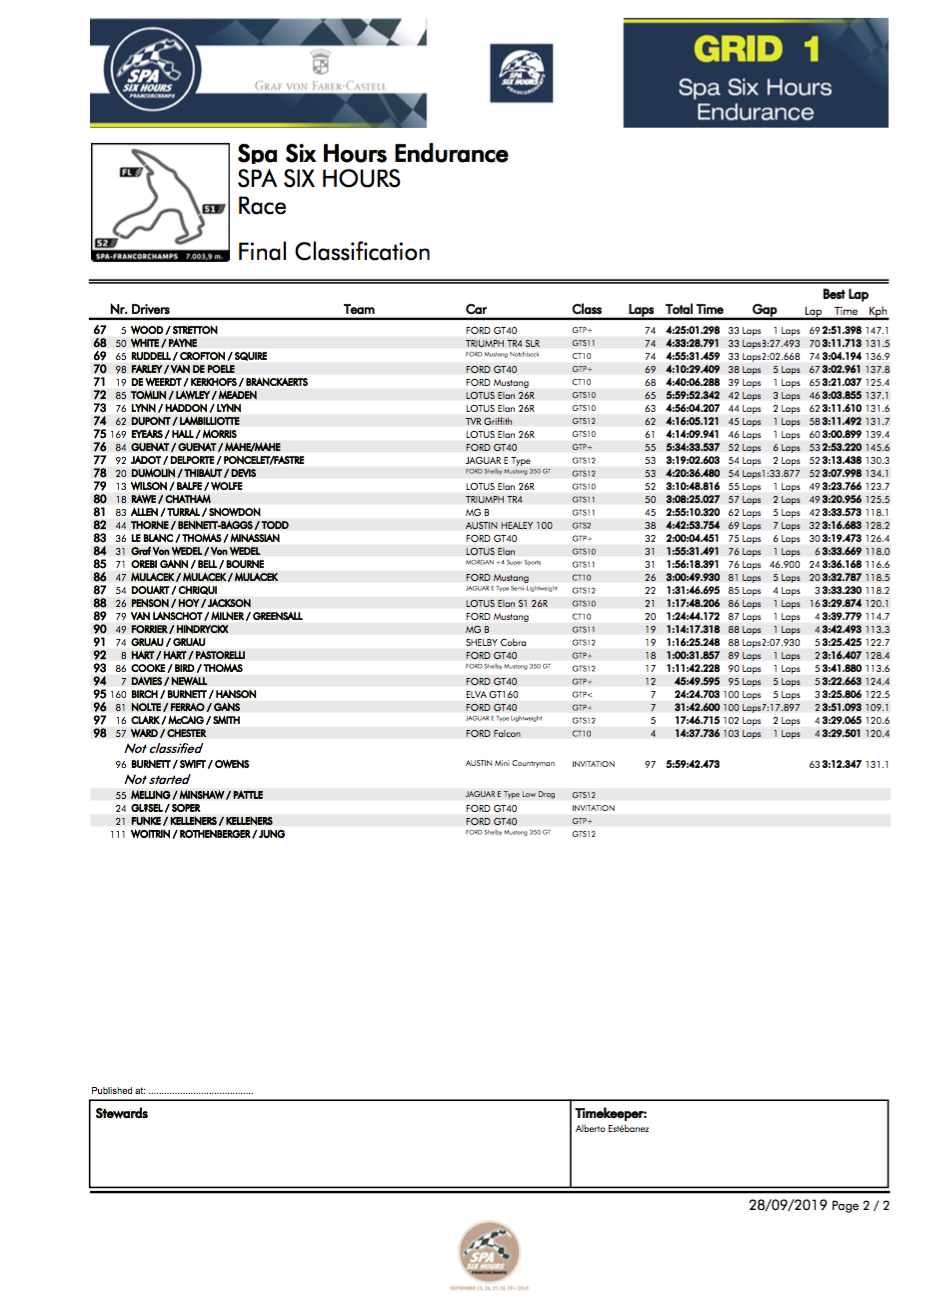 Spa Six Hours Result 2